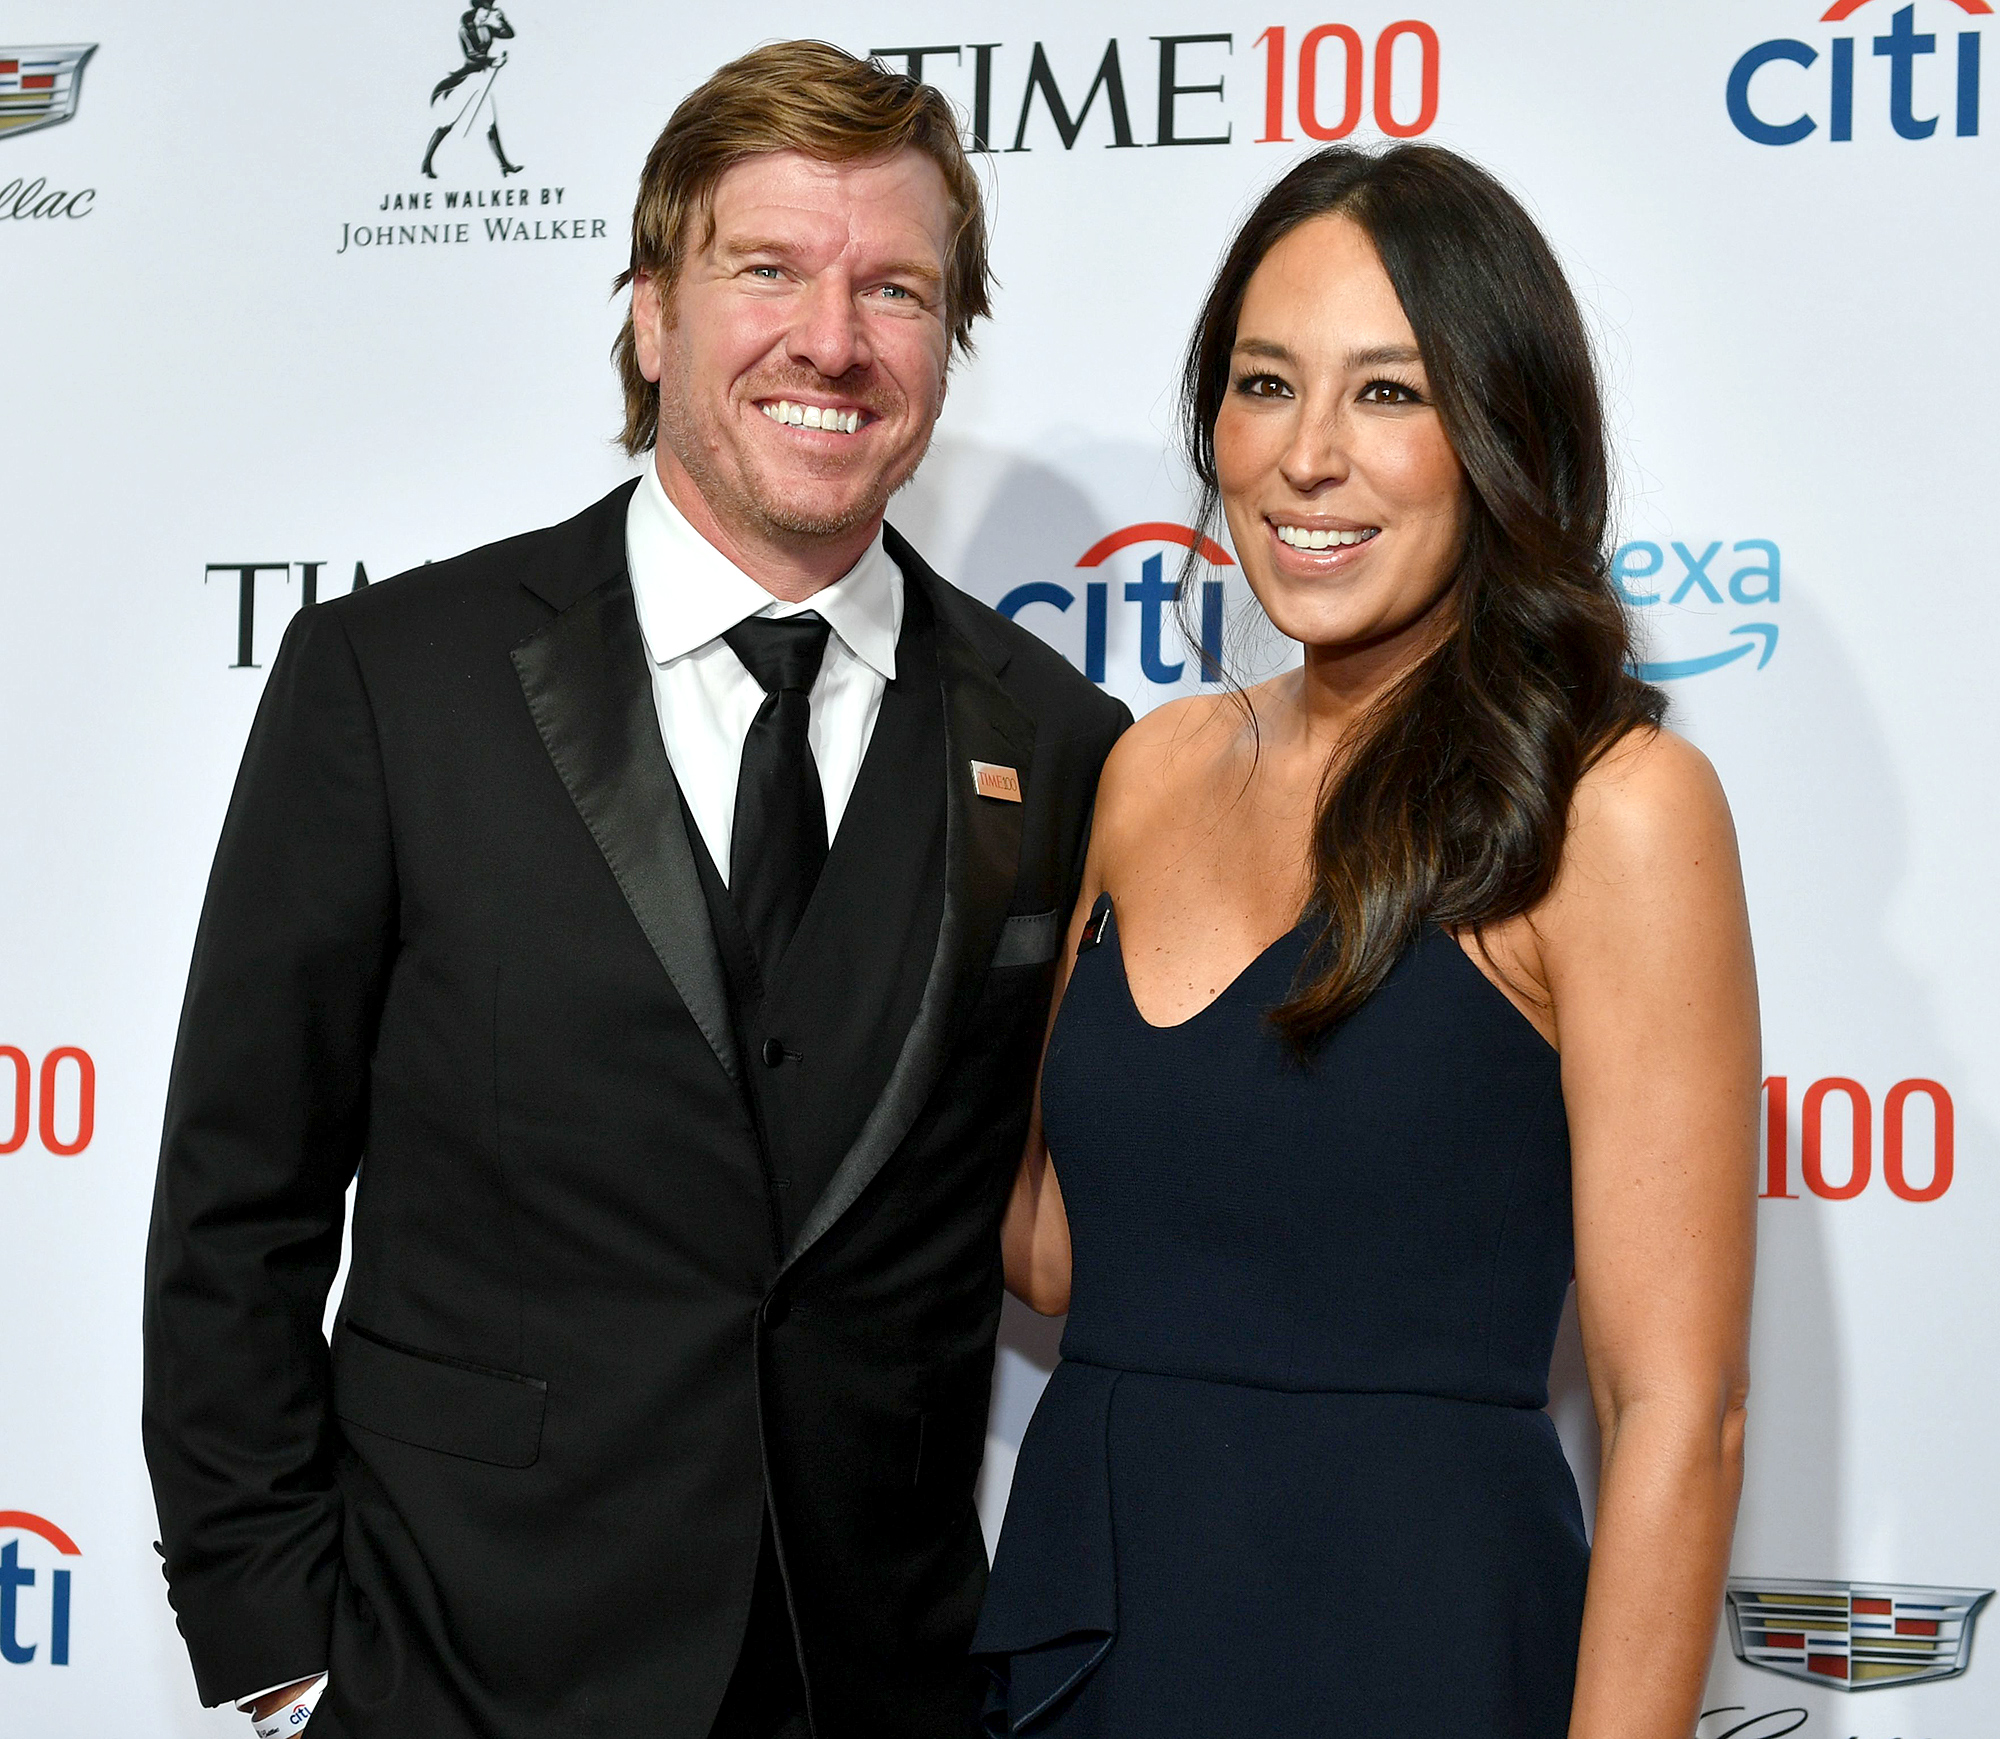 Chip and Joanna Gaines Reveal How Their Differences Balance Each Other 2